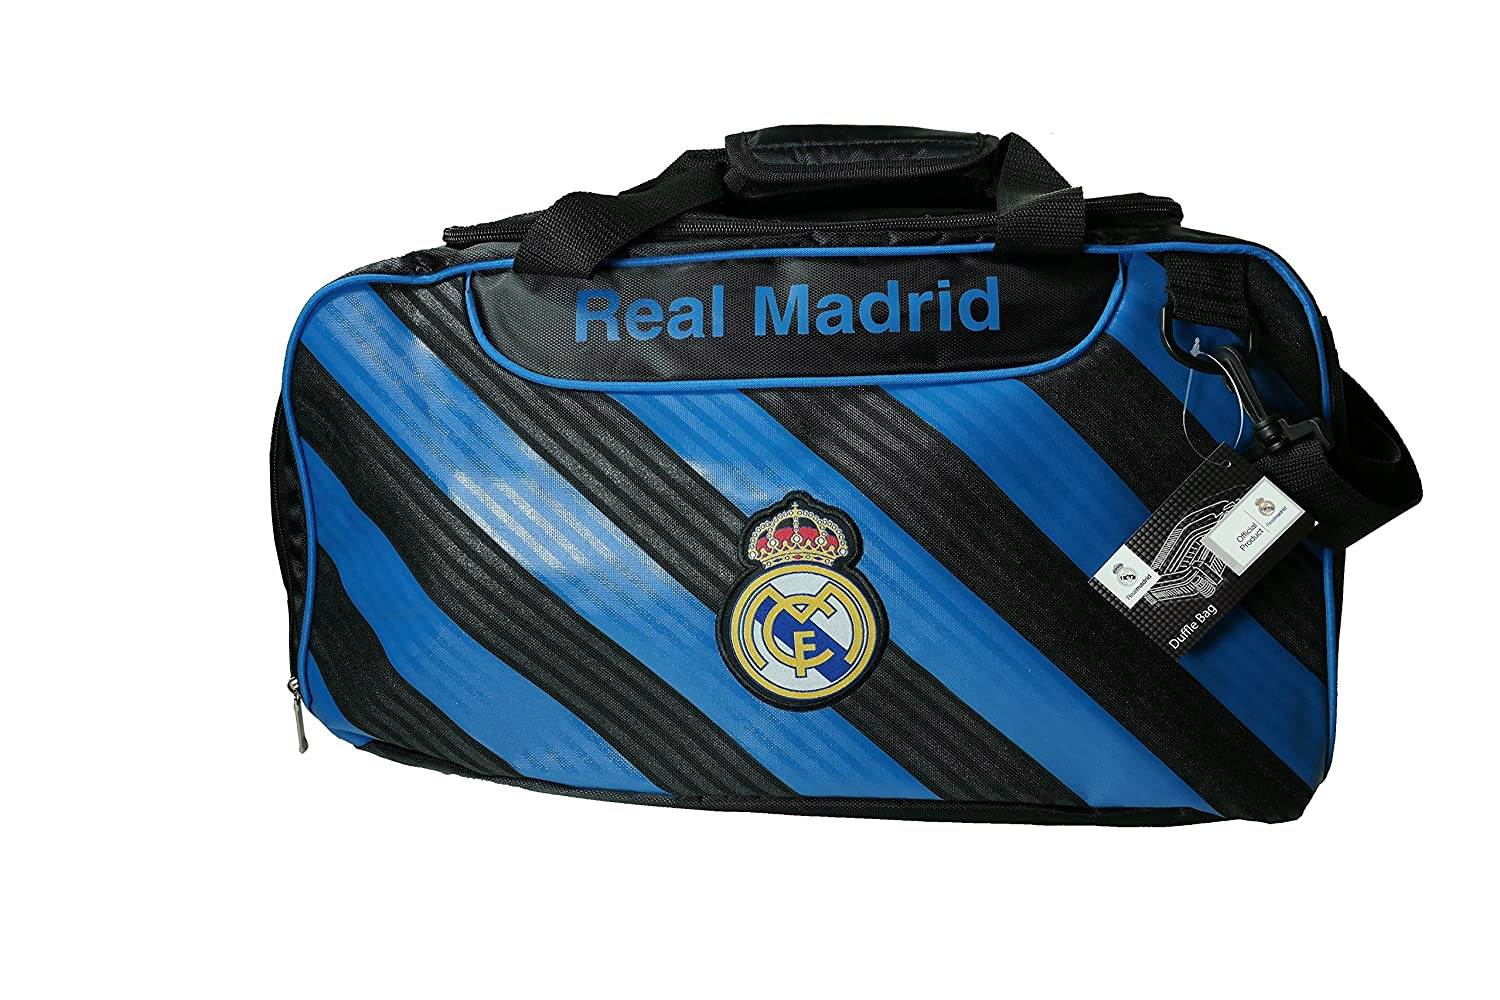 1964cfd6df67 Real Madrid C.F. Authentic Official Licensed Product Soccer Duffel Bag 07